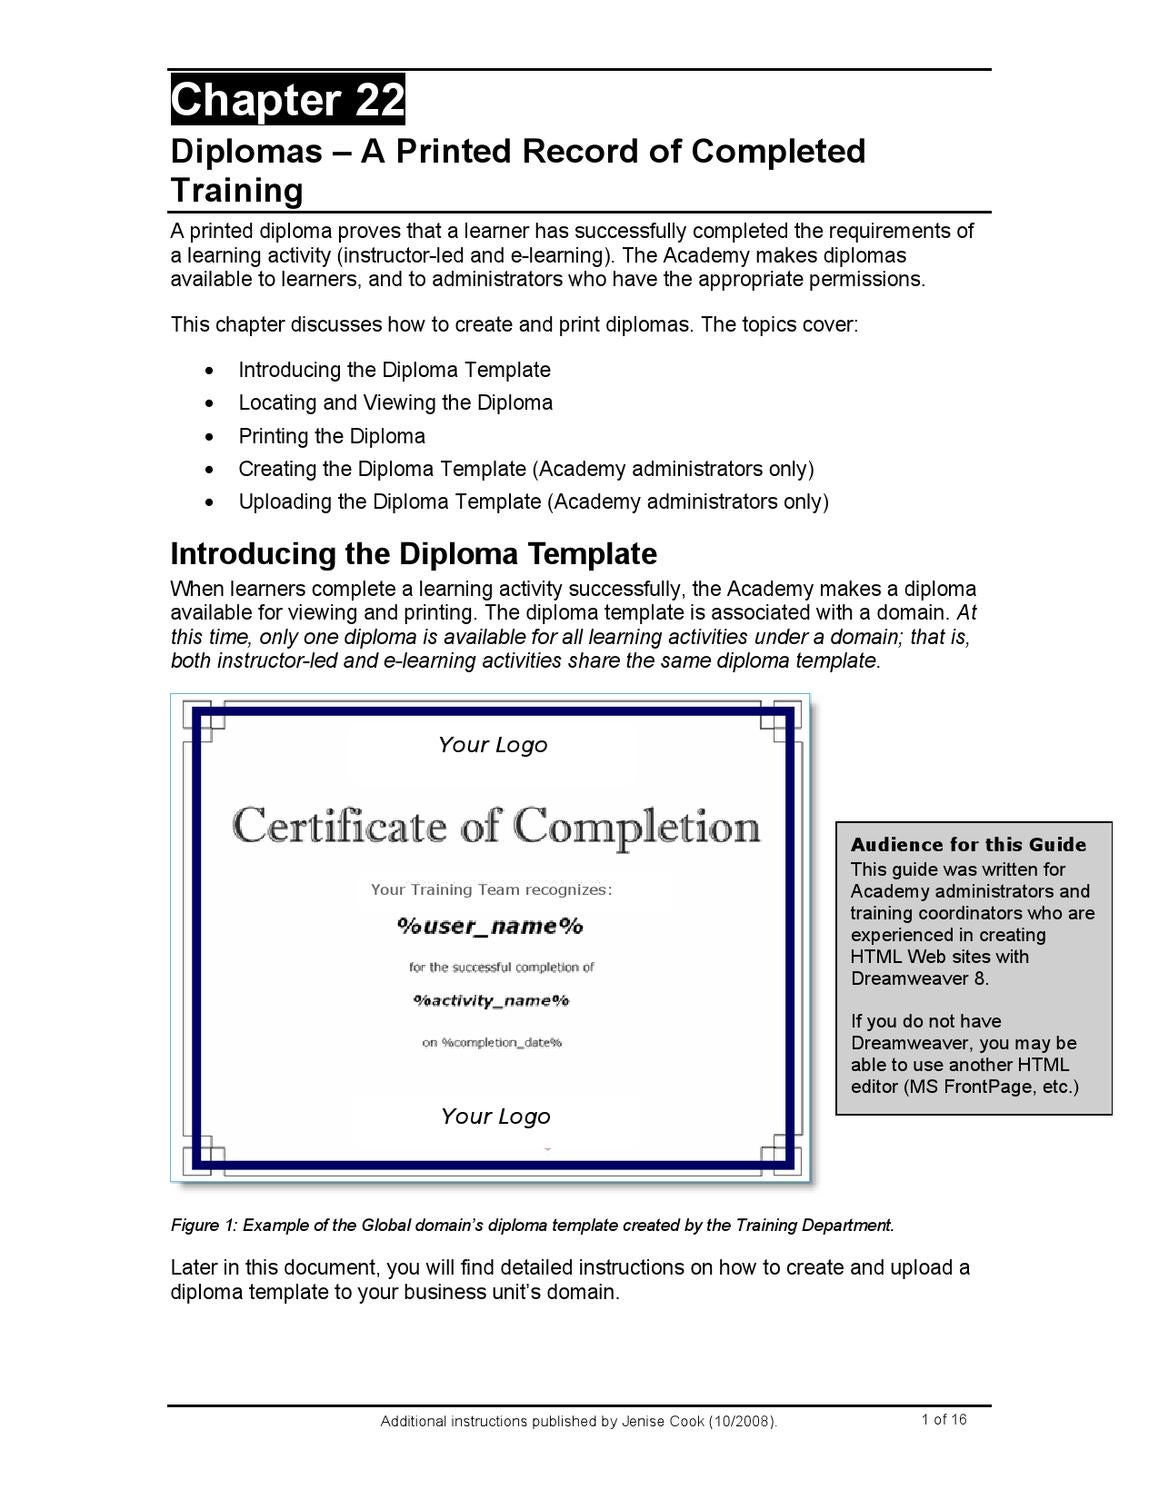 How to create a certificate of completion learner diploma in how to create a certificate of completion learner diploma in sumtotal systems totallms 72 by ridgeviewmedia jenise cook issuu yadclub Images